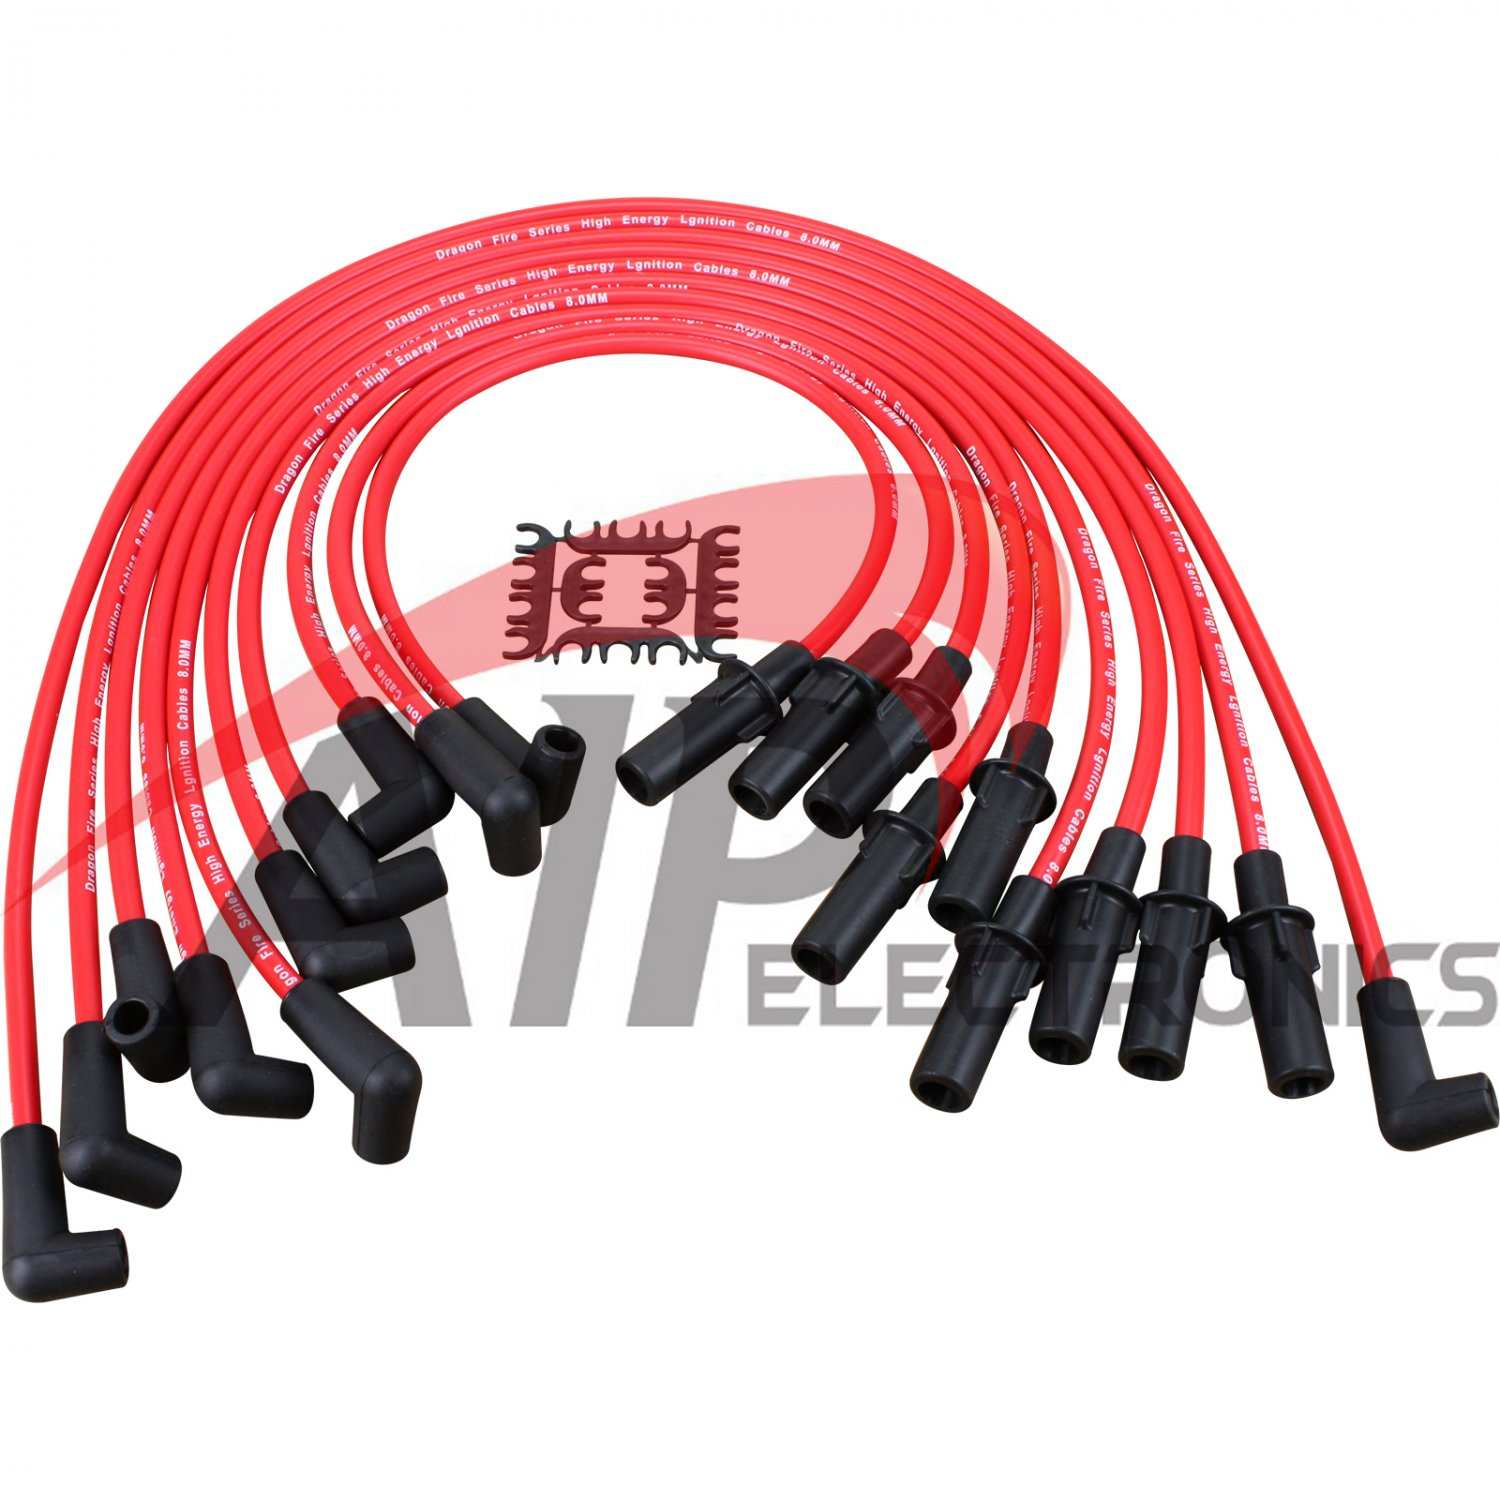 Brand New Performance Spark Plug Wire Set For 1990-2003 Dodge 1500 2500 and 3500 Truck Van Oem Fit P